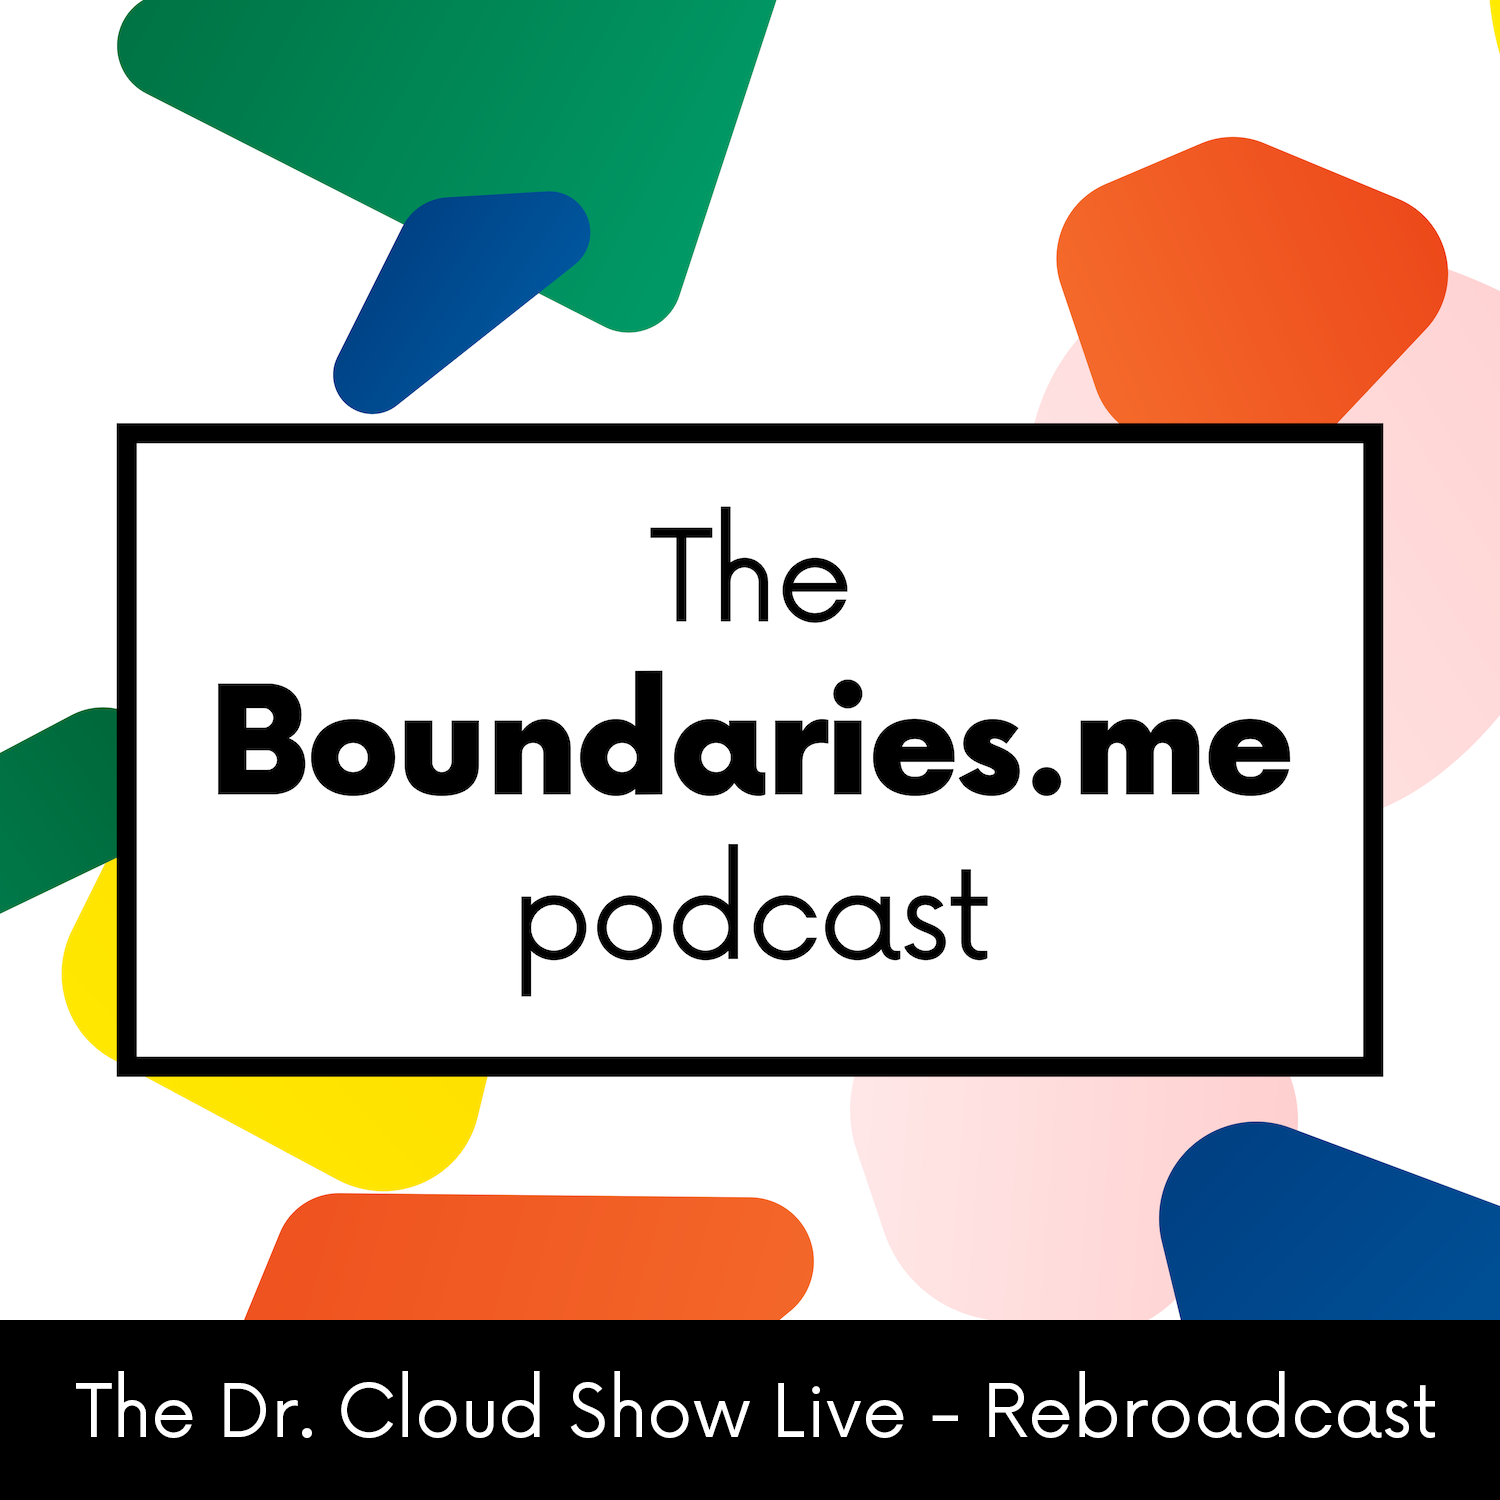 Episode 23 - The Dr. Cloud Show Live - Expand Your Circle of Trust